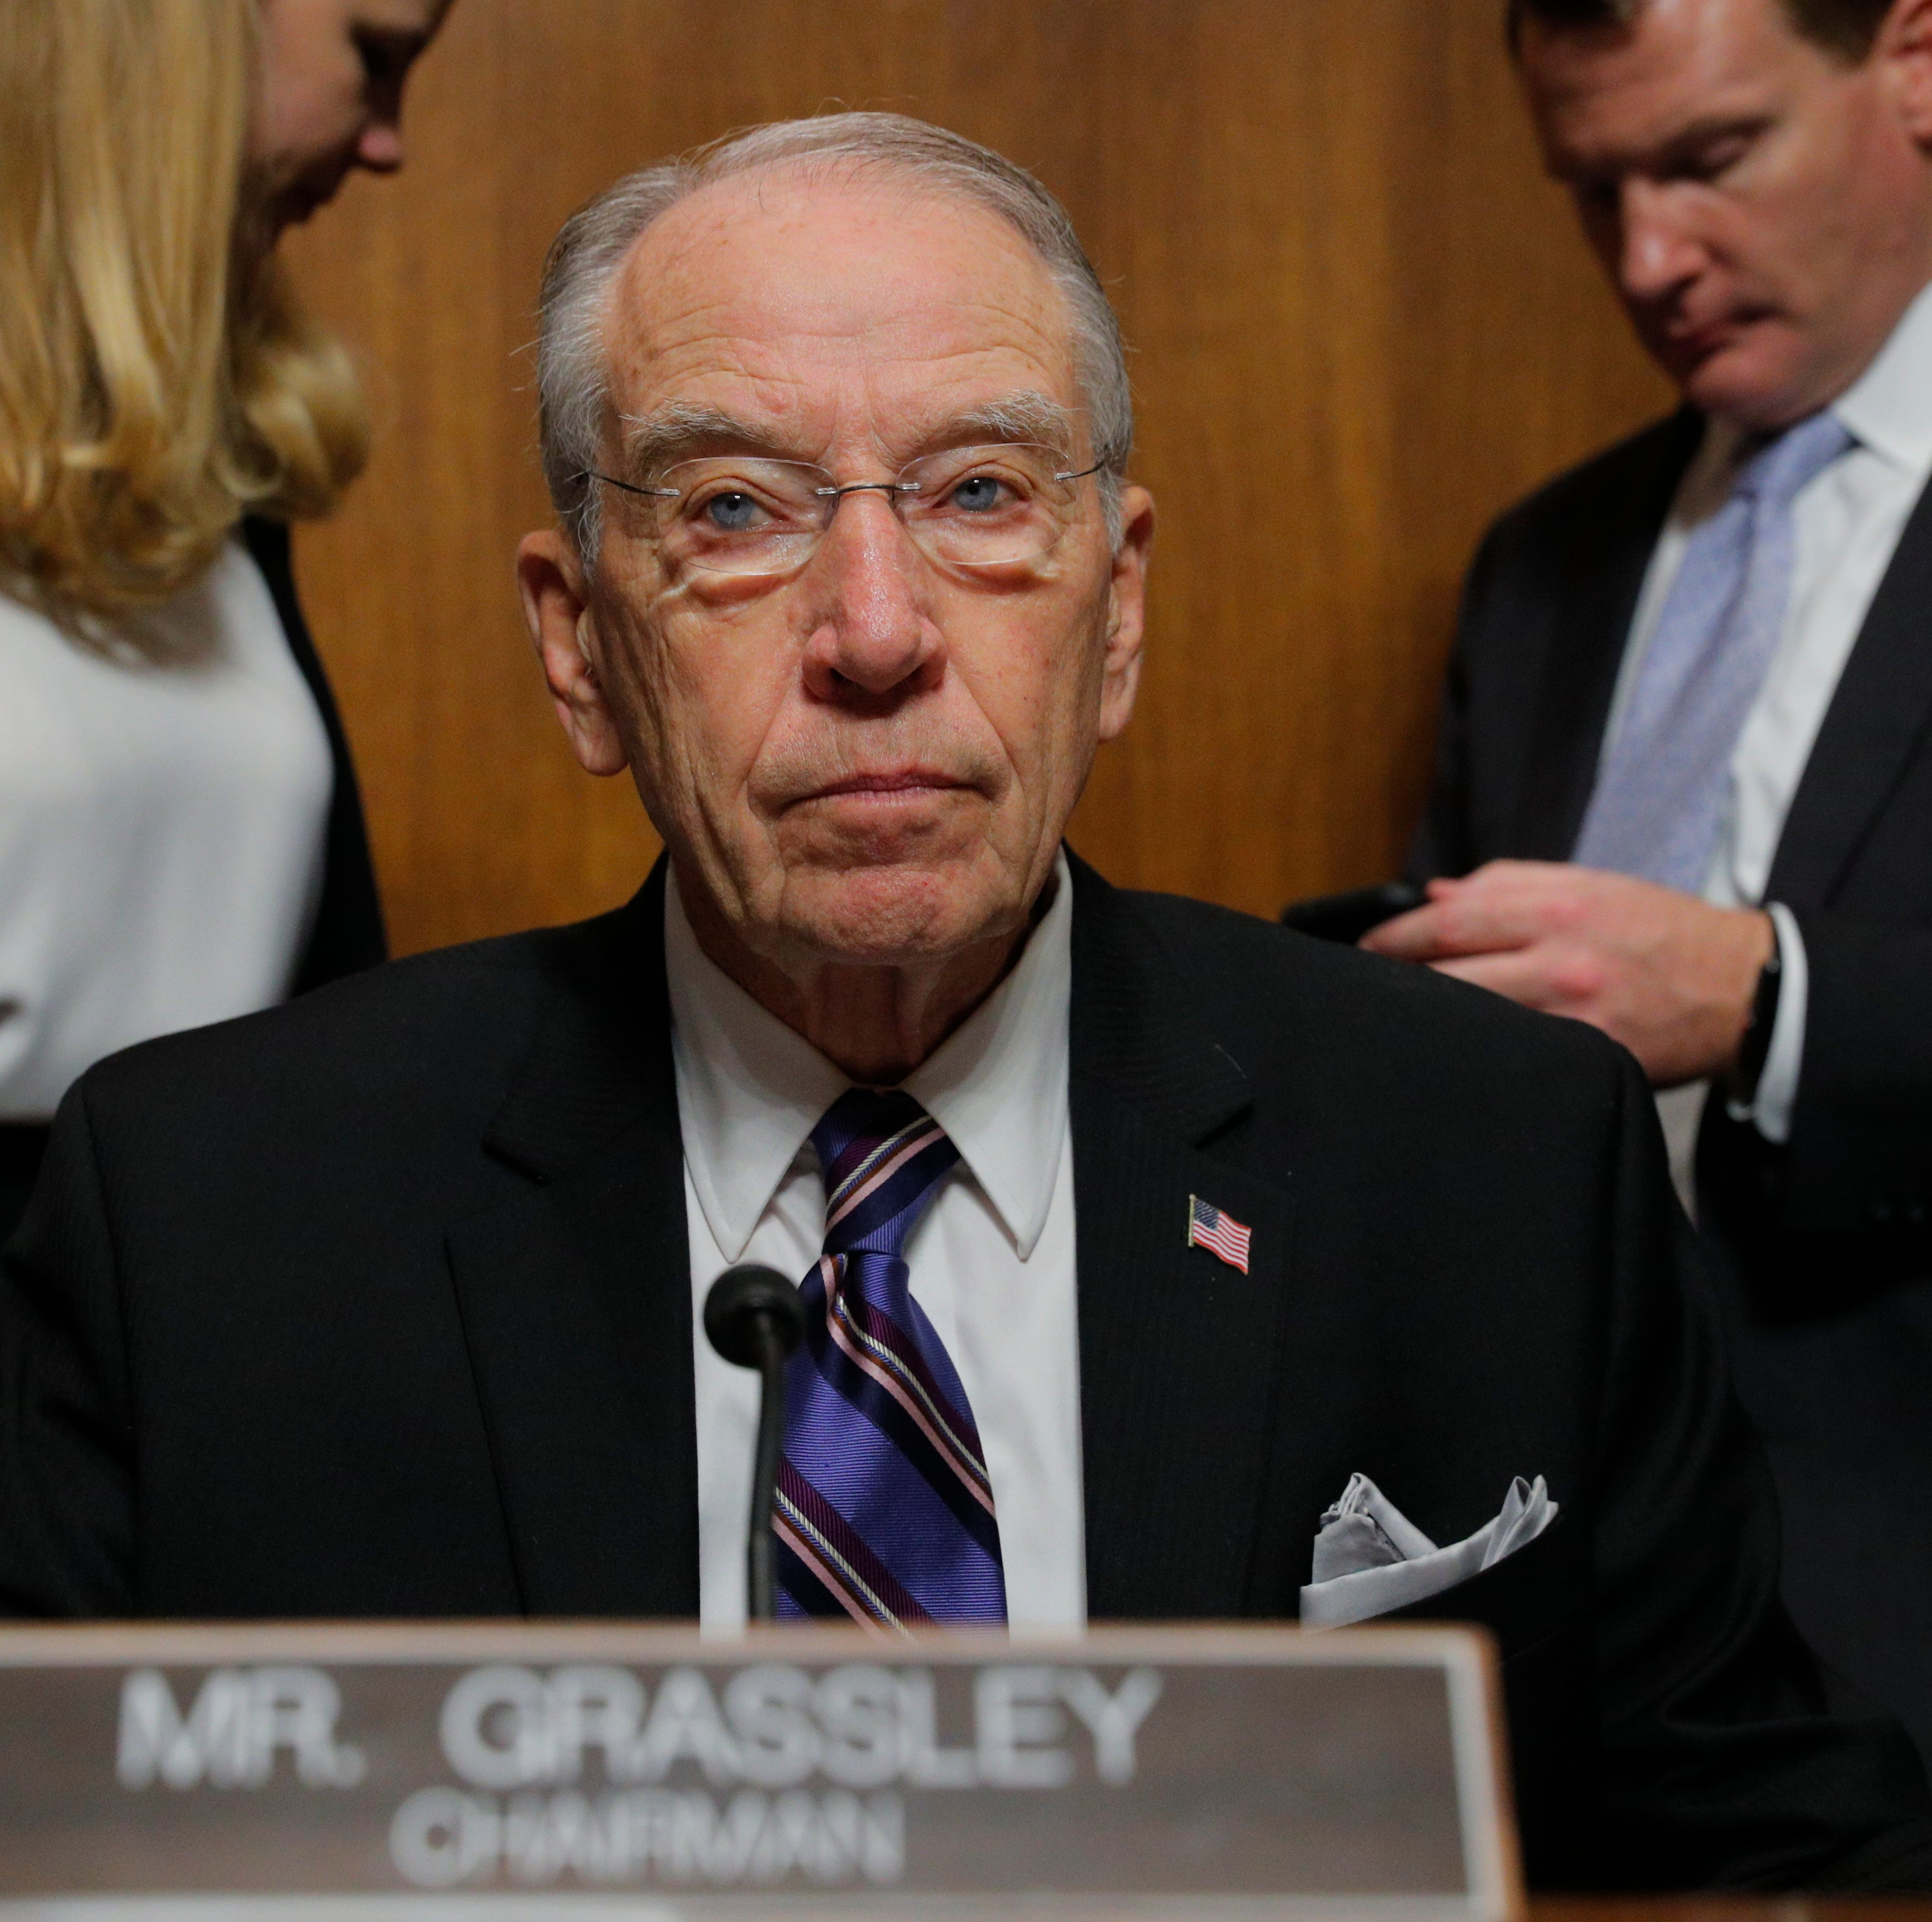 Chuck Grassley: Former Trump lawyer Michael Cohen is a 'liar' so how could he implicate the president?